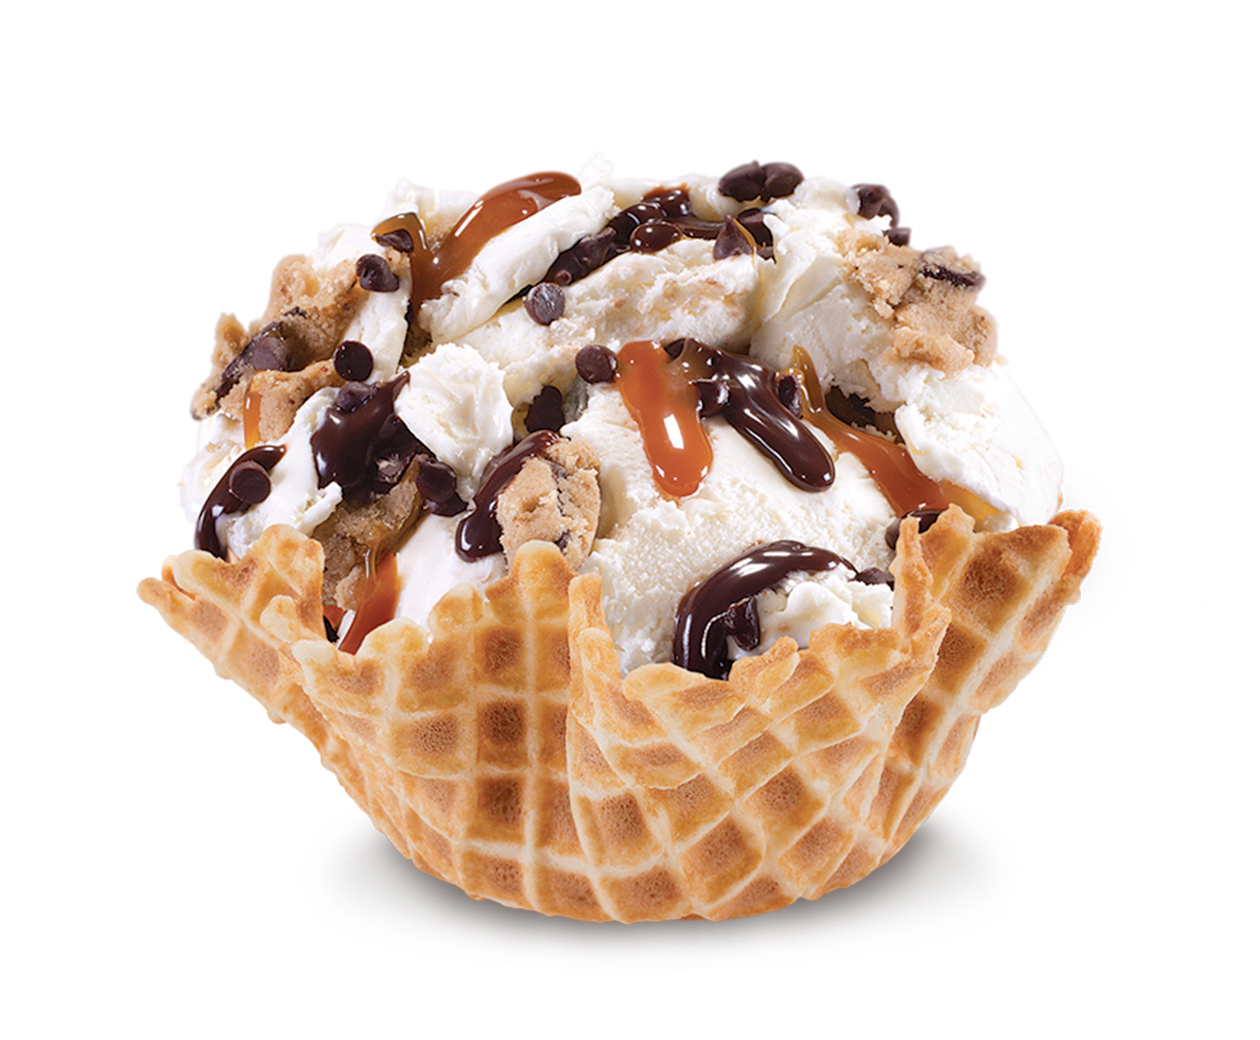 Cold Stone Creamery Signature Creations Ice Cream